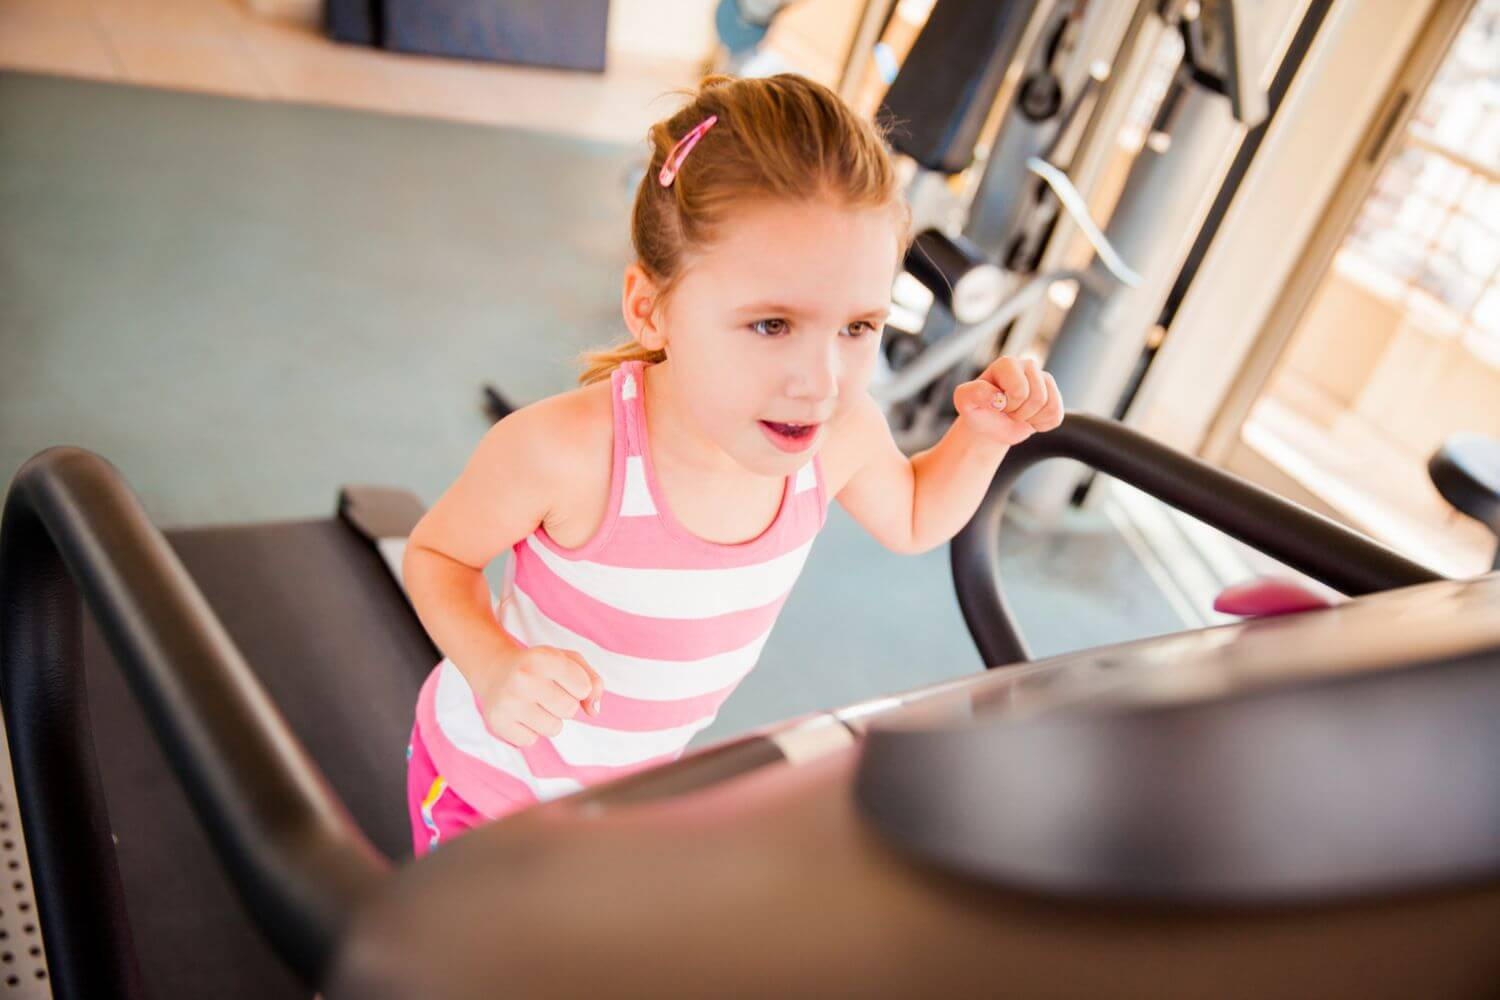 The-treadmill-poses-serious-risks-to-children-for-abrasions